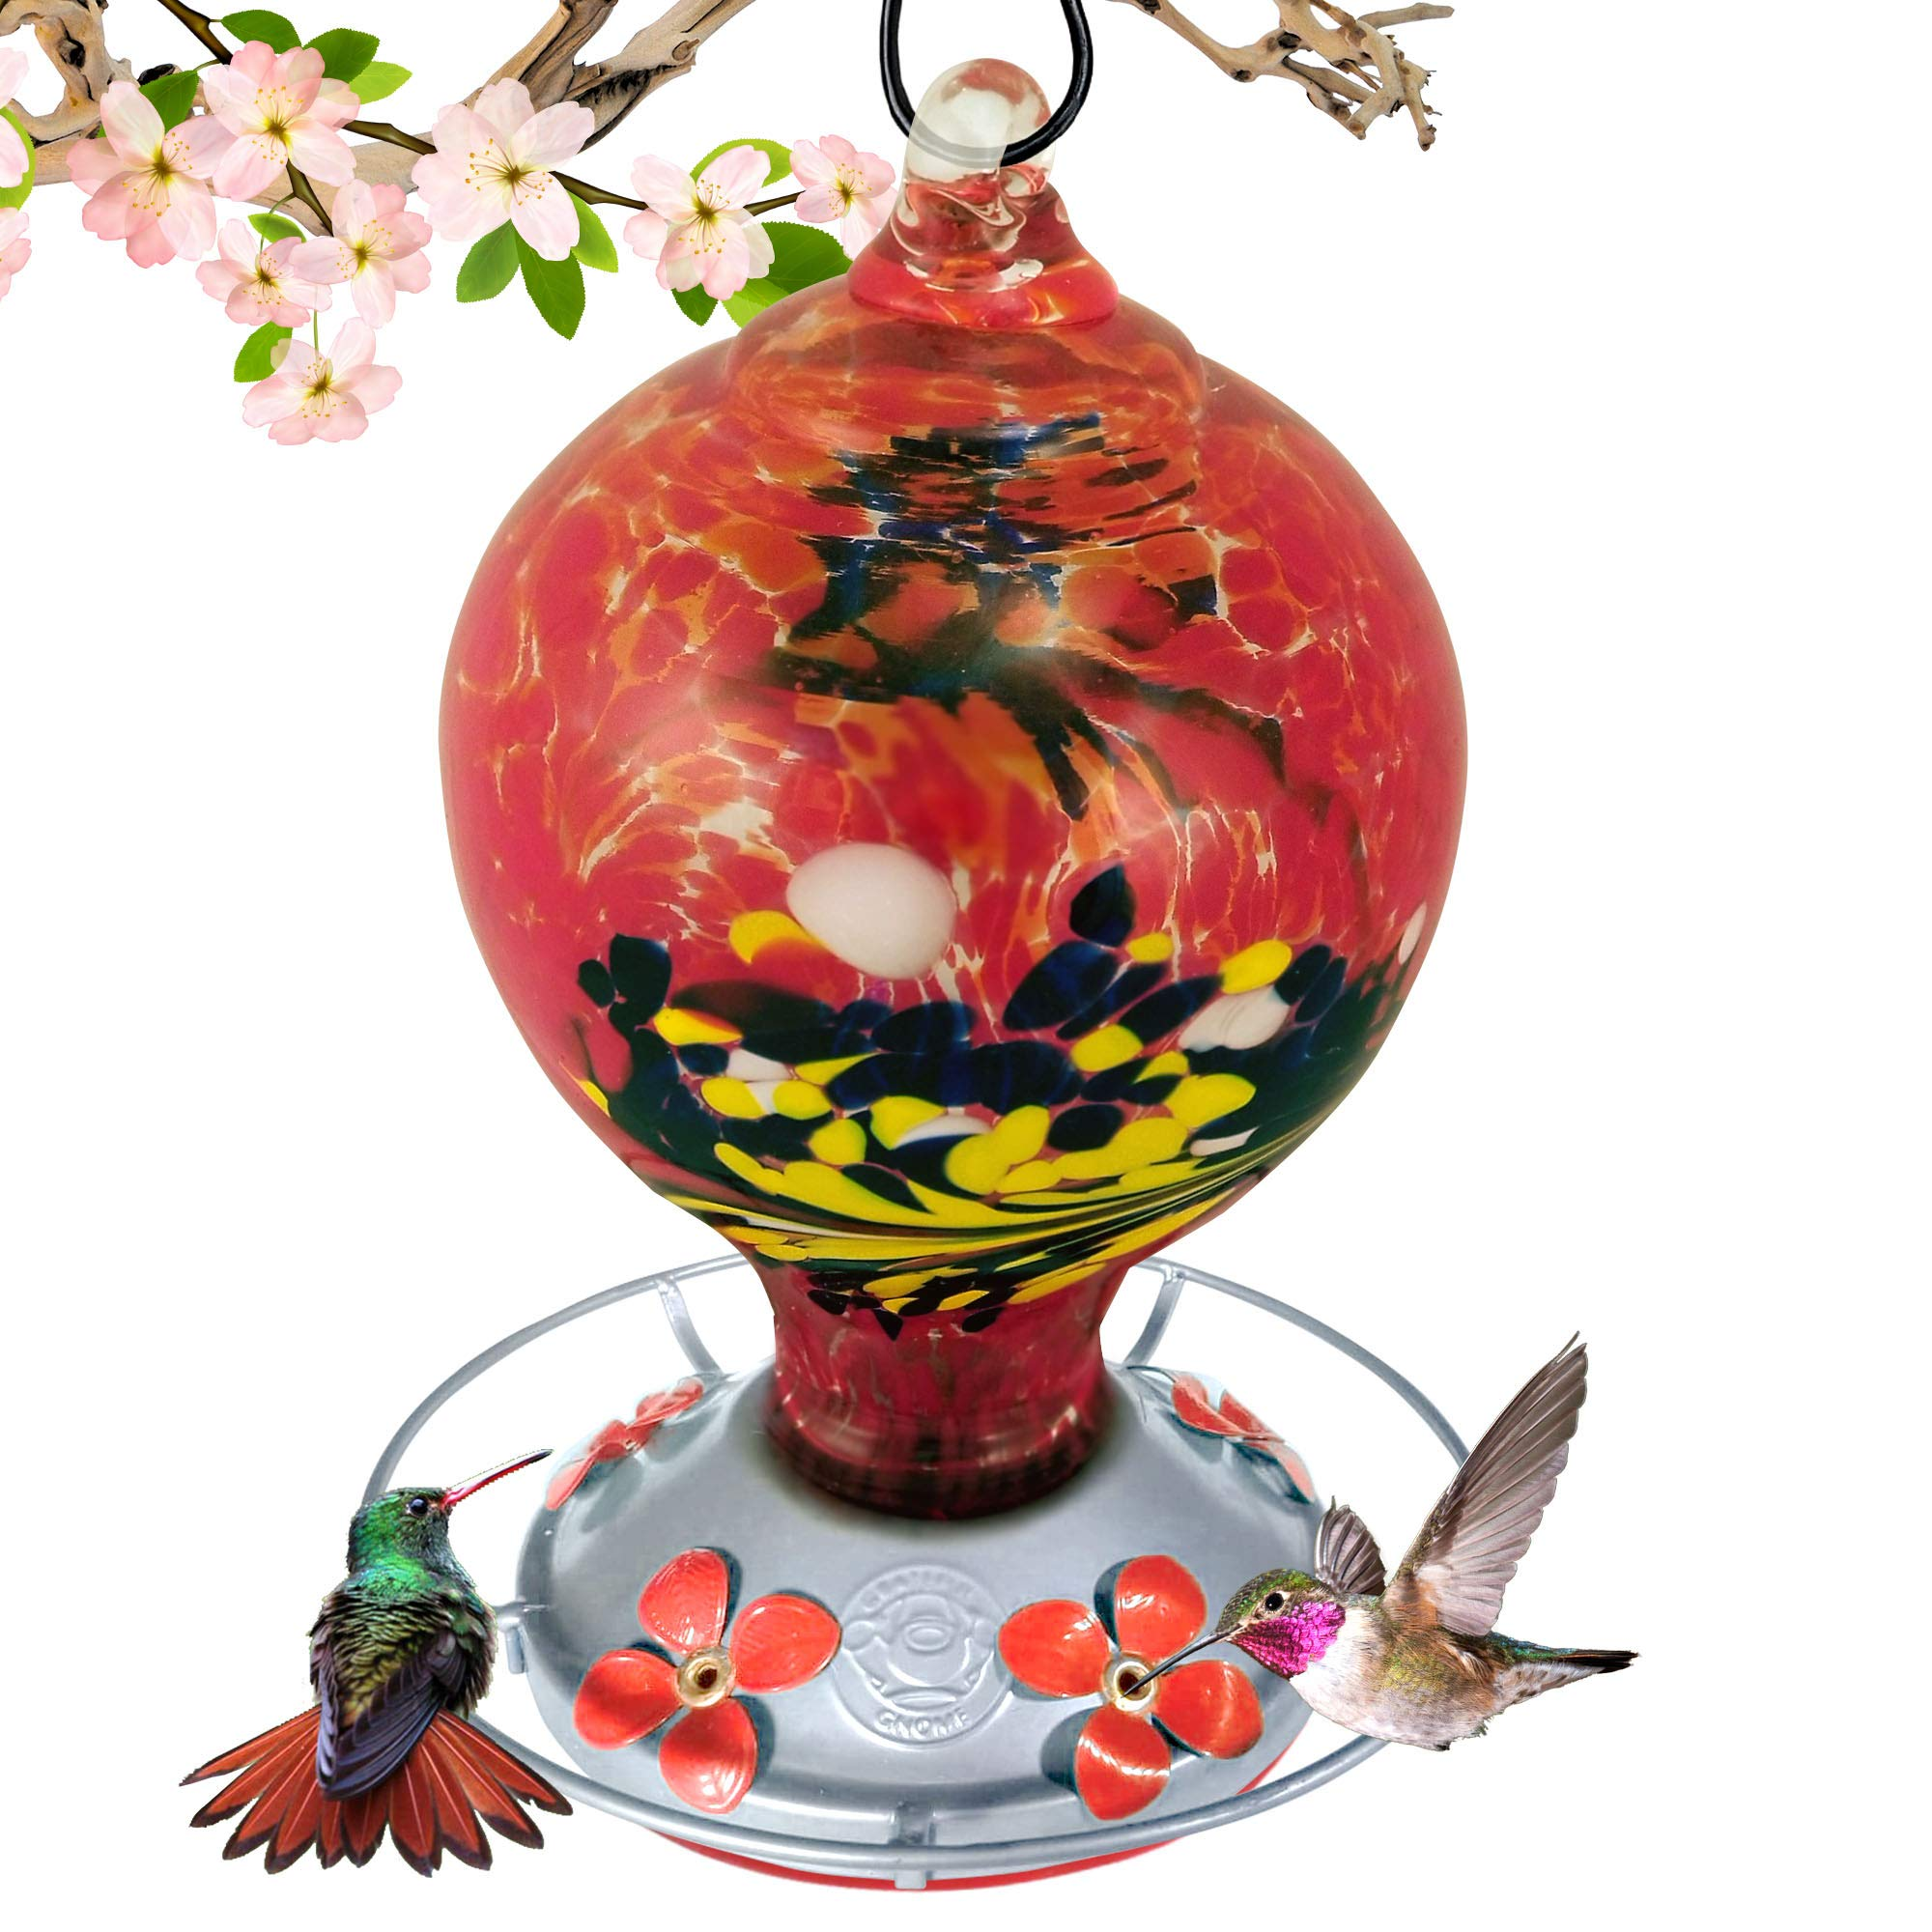 Grateful Gnome - Hummingbird Feeder - Hand Blown Glass - Large Red Egg with Flowers - 36 Fluid Ounces by Grateful Gnome